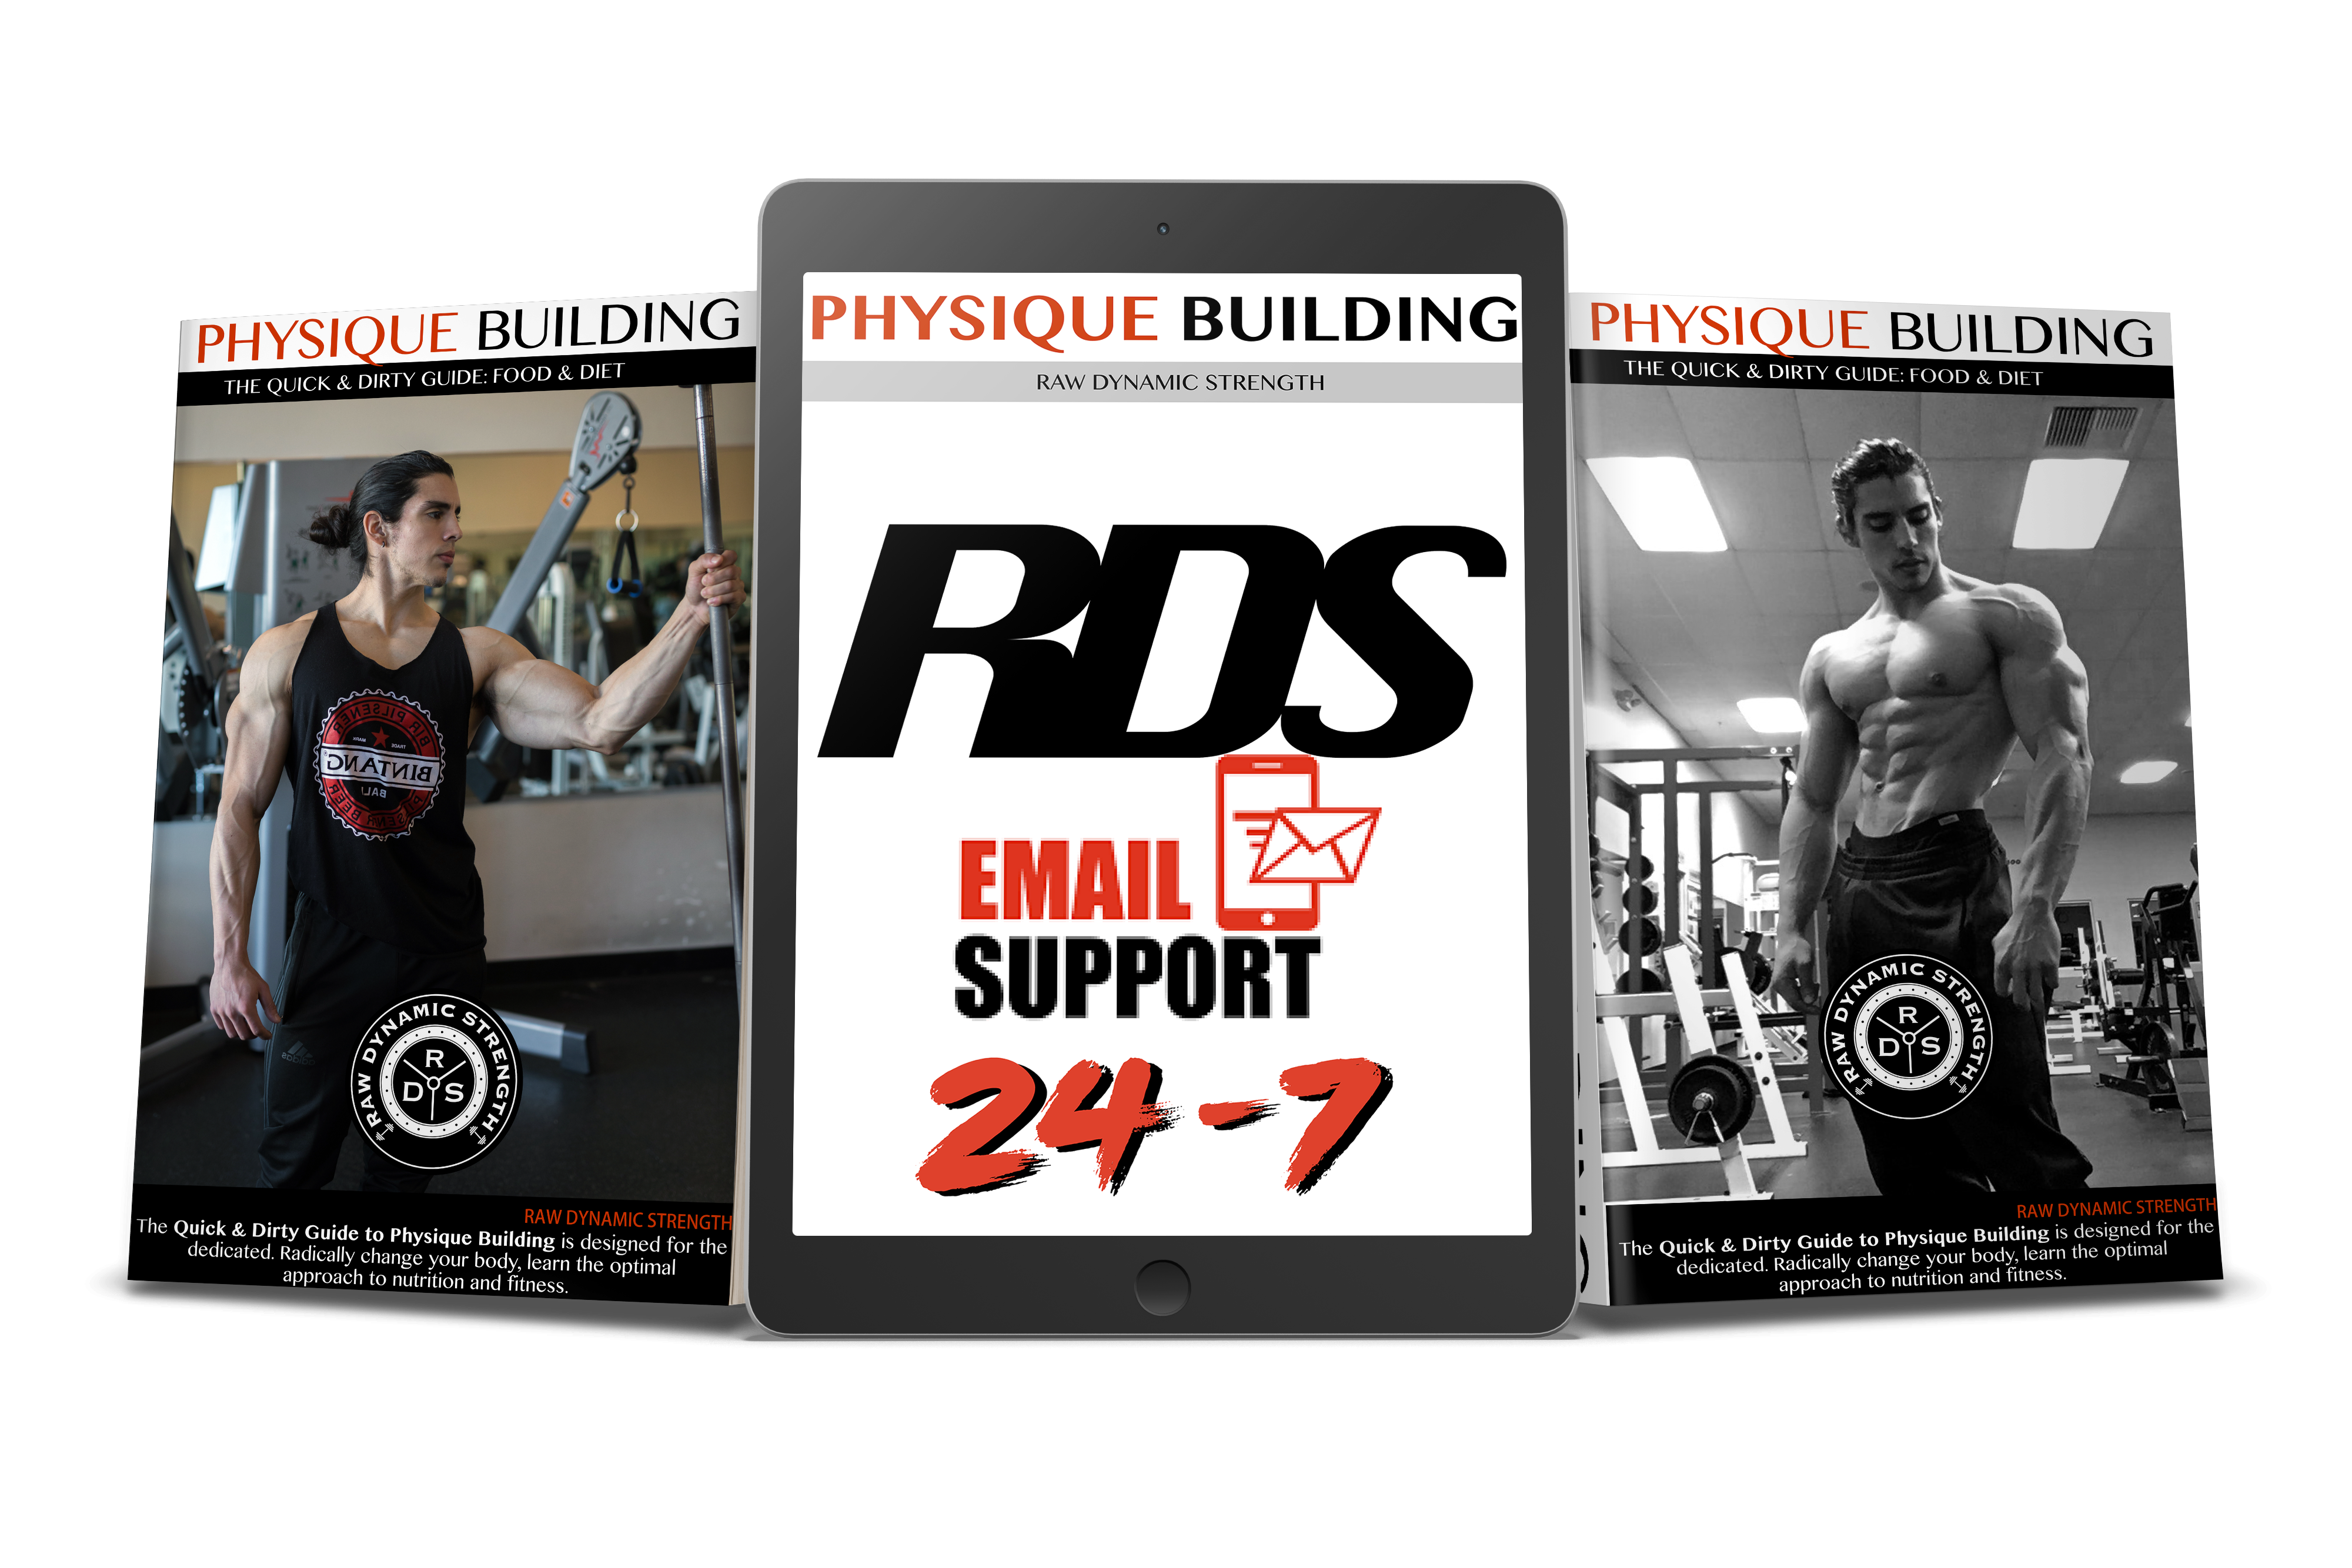 Muscles clipart physique. Rds email support value